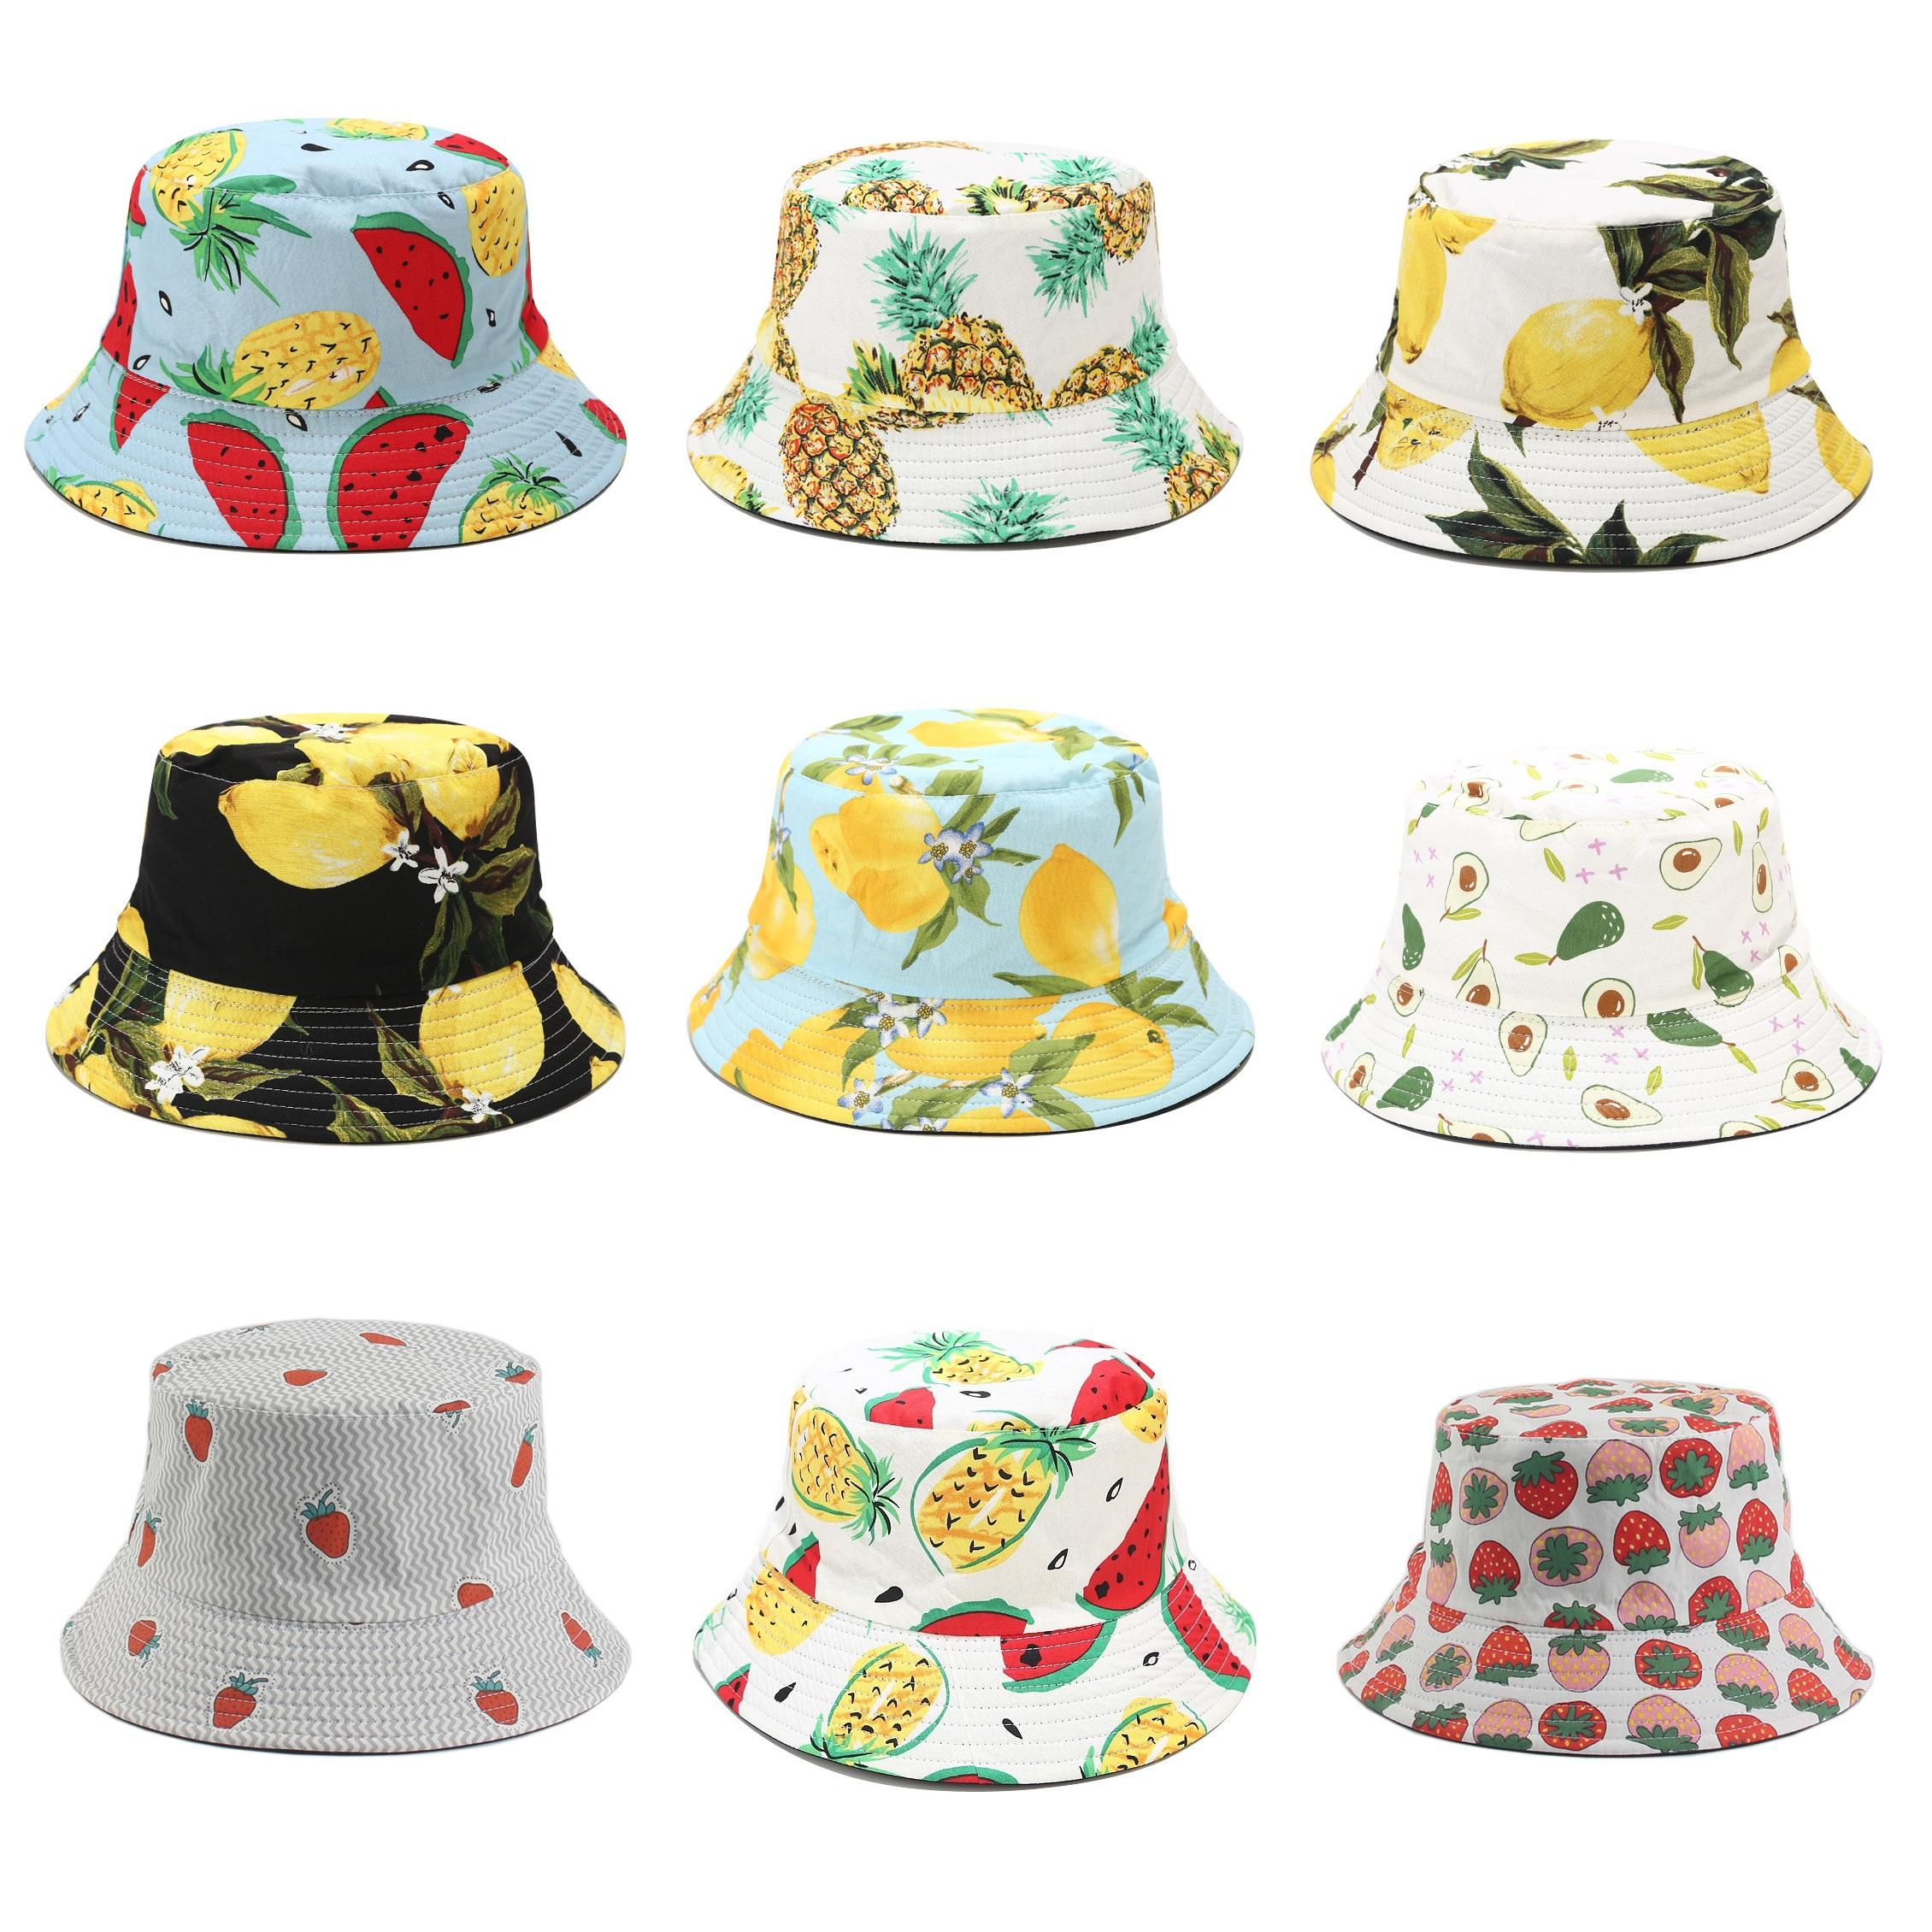 Fisherman hats with tropical print and fruit design for men women summer outdoor sunshade hat